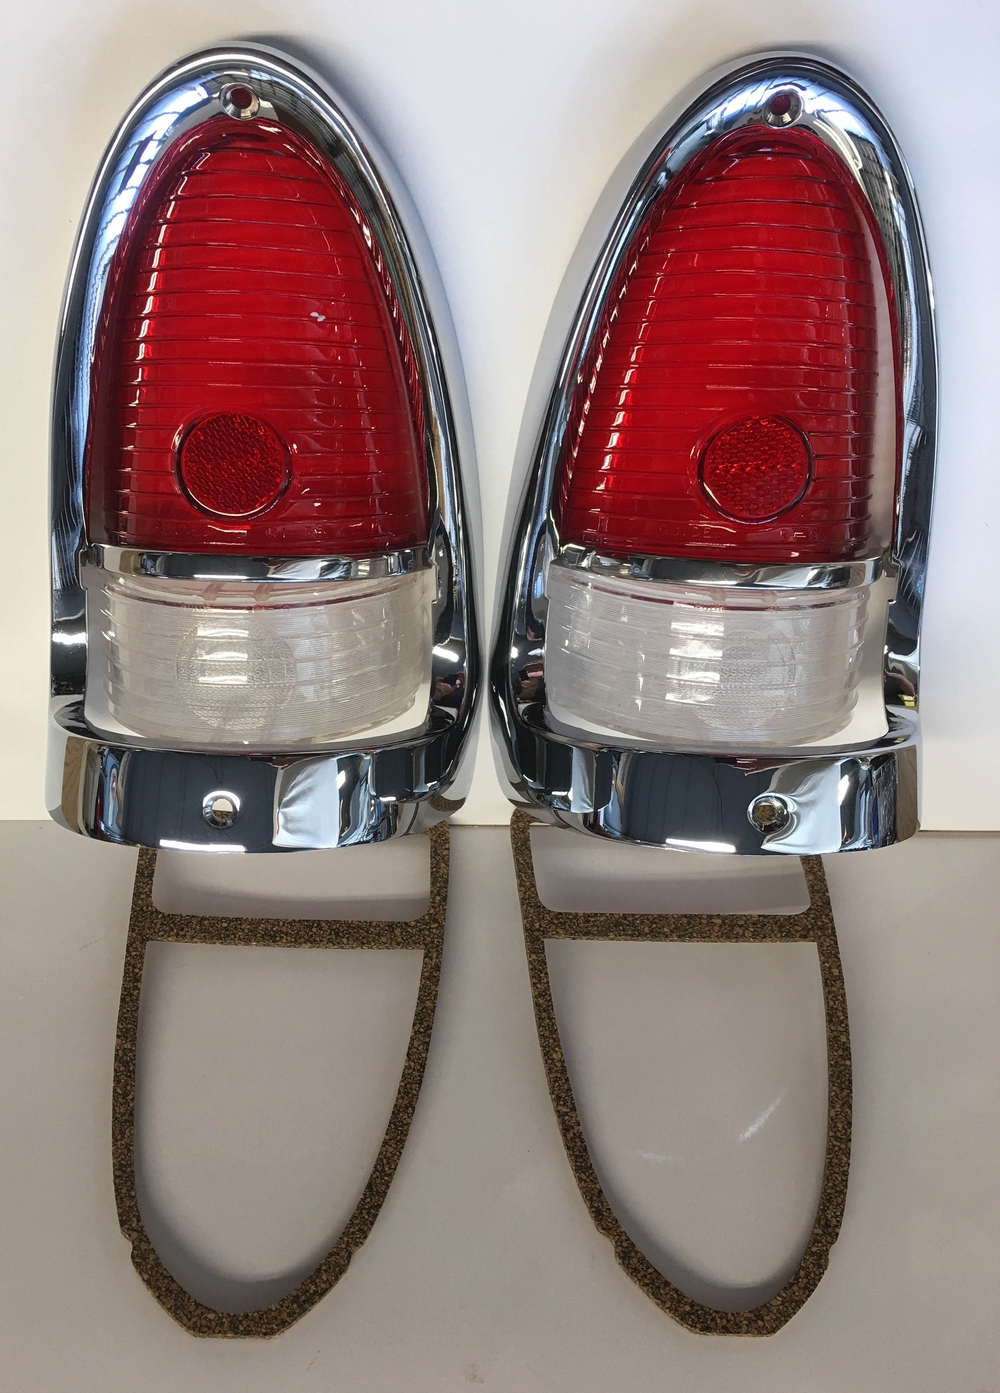 1955 Chevrolet RED Tail Light Bezels Kit - 10 Pieces